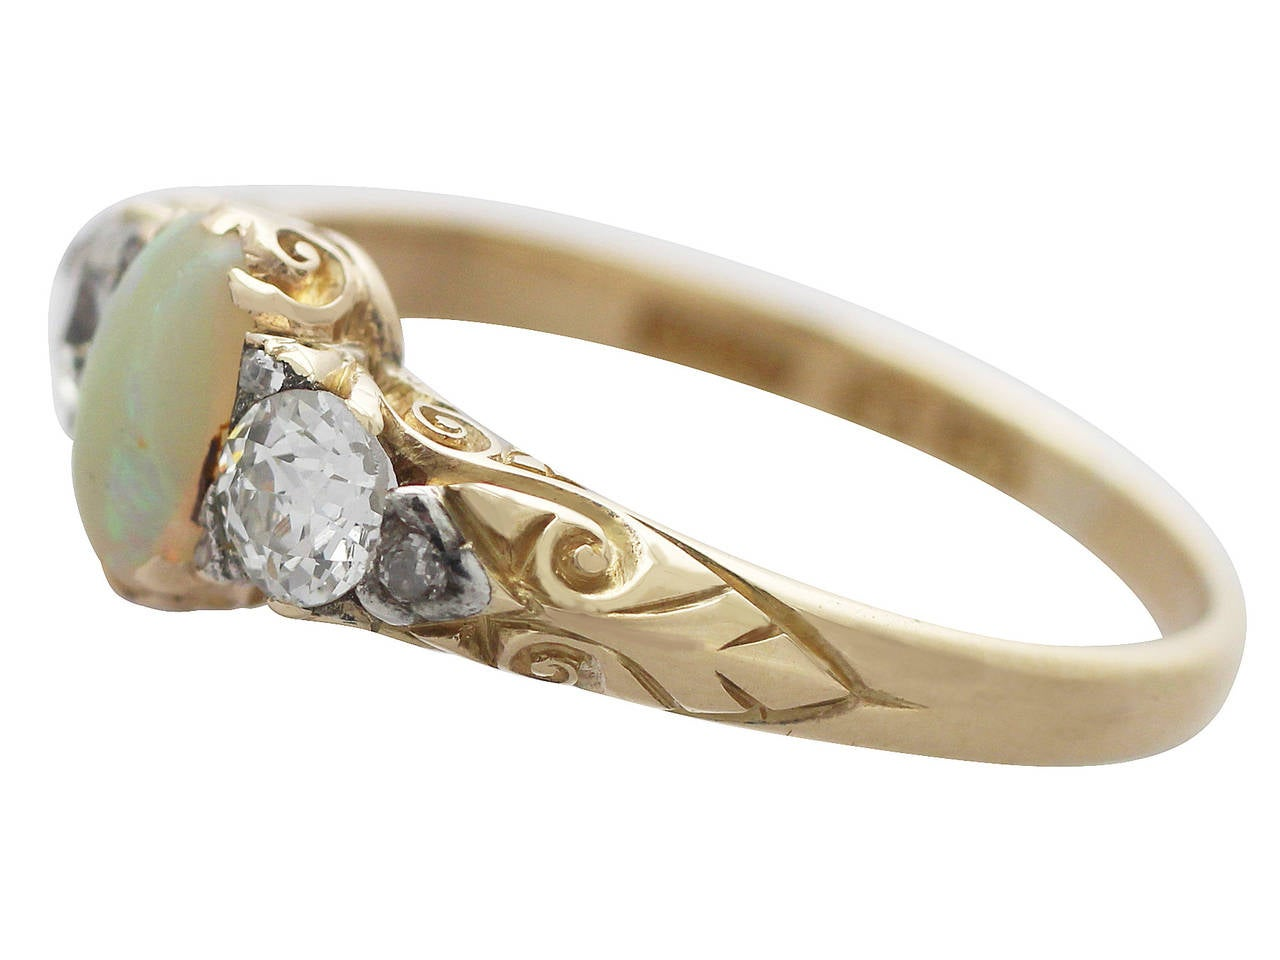 0.48Ct Opal & 0.76Ct Diamond 18k Yellow Gold Trilogy Ring - Antique Victorian 4